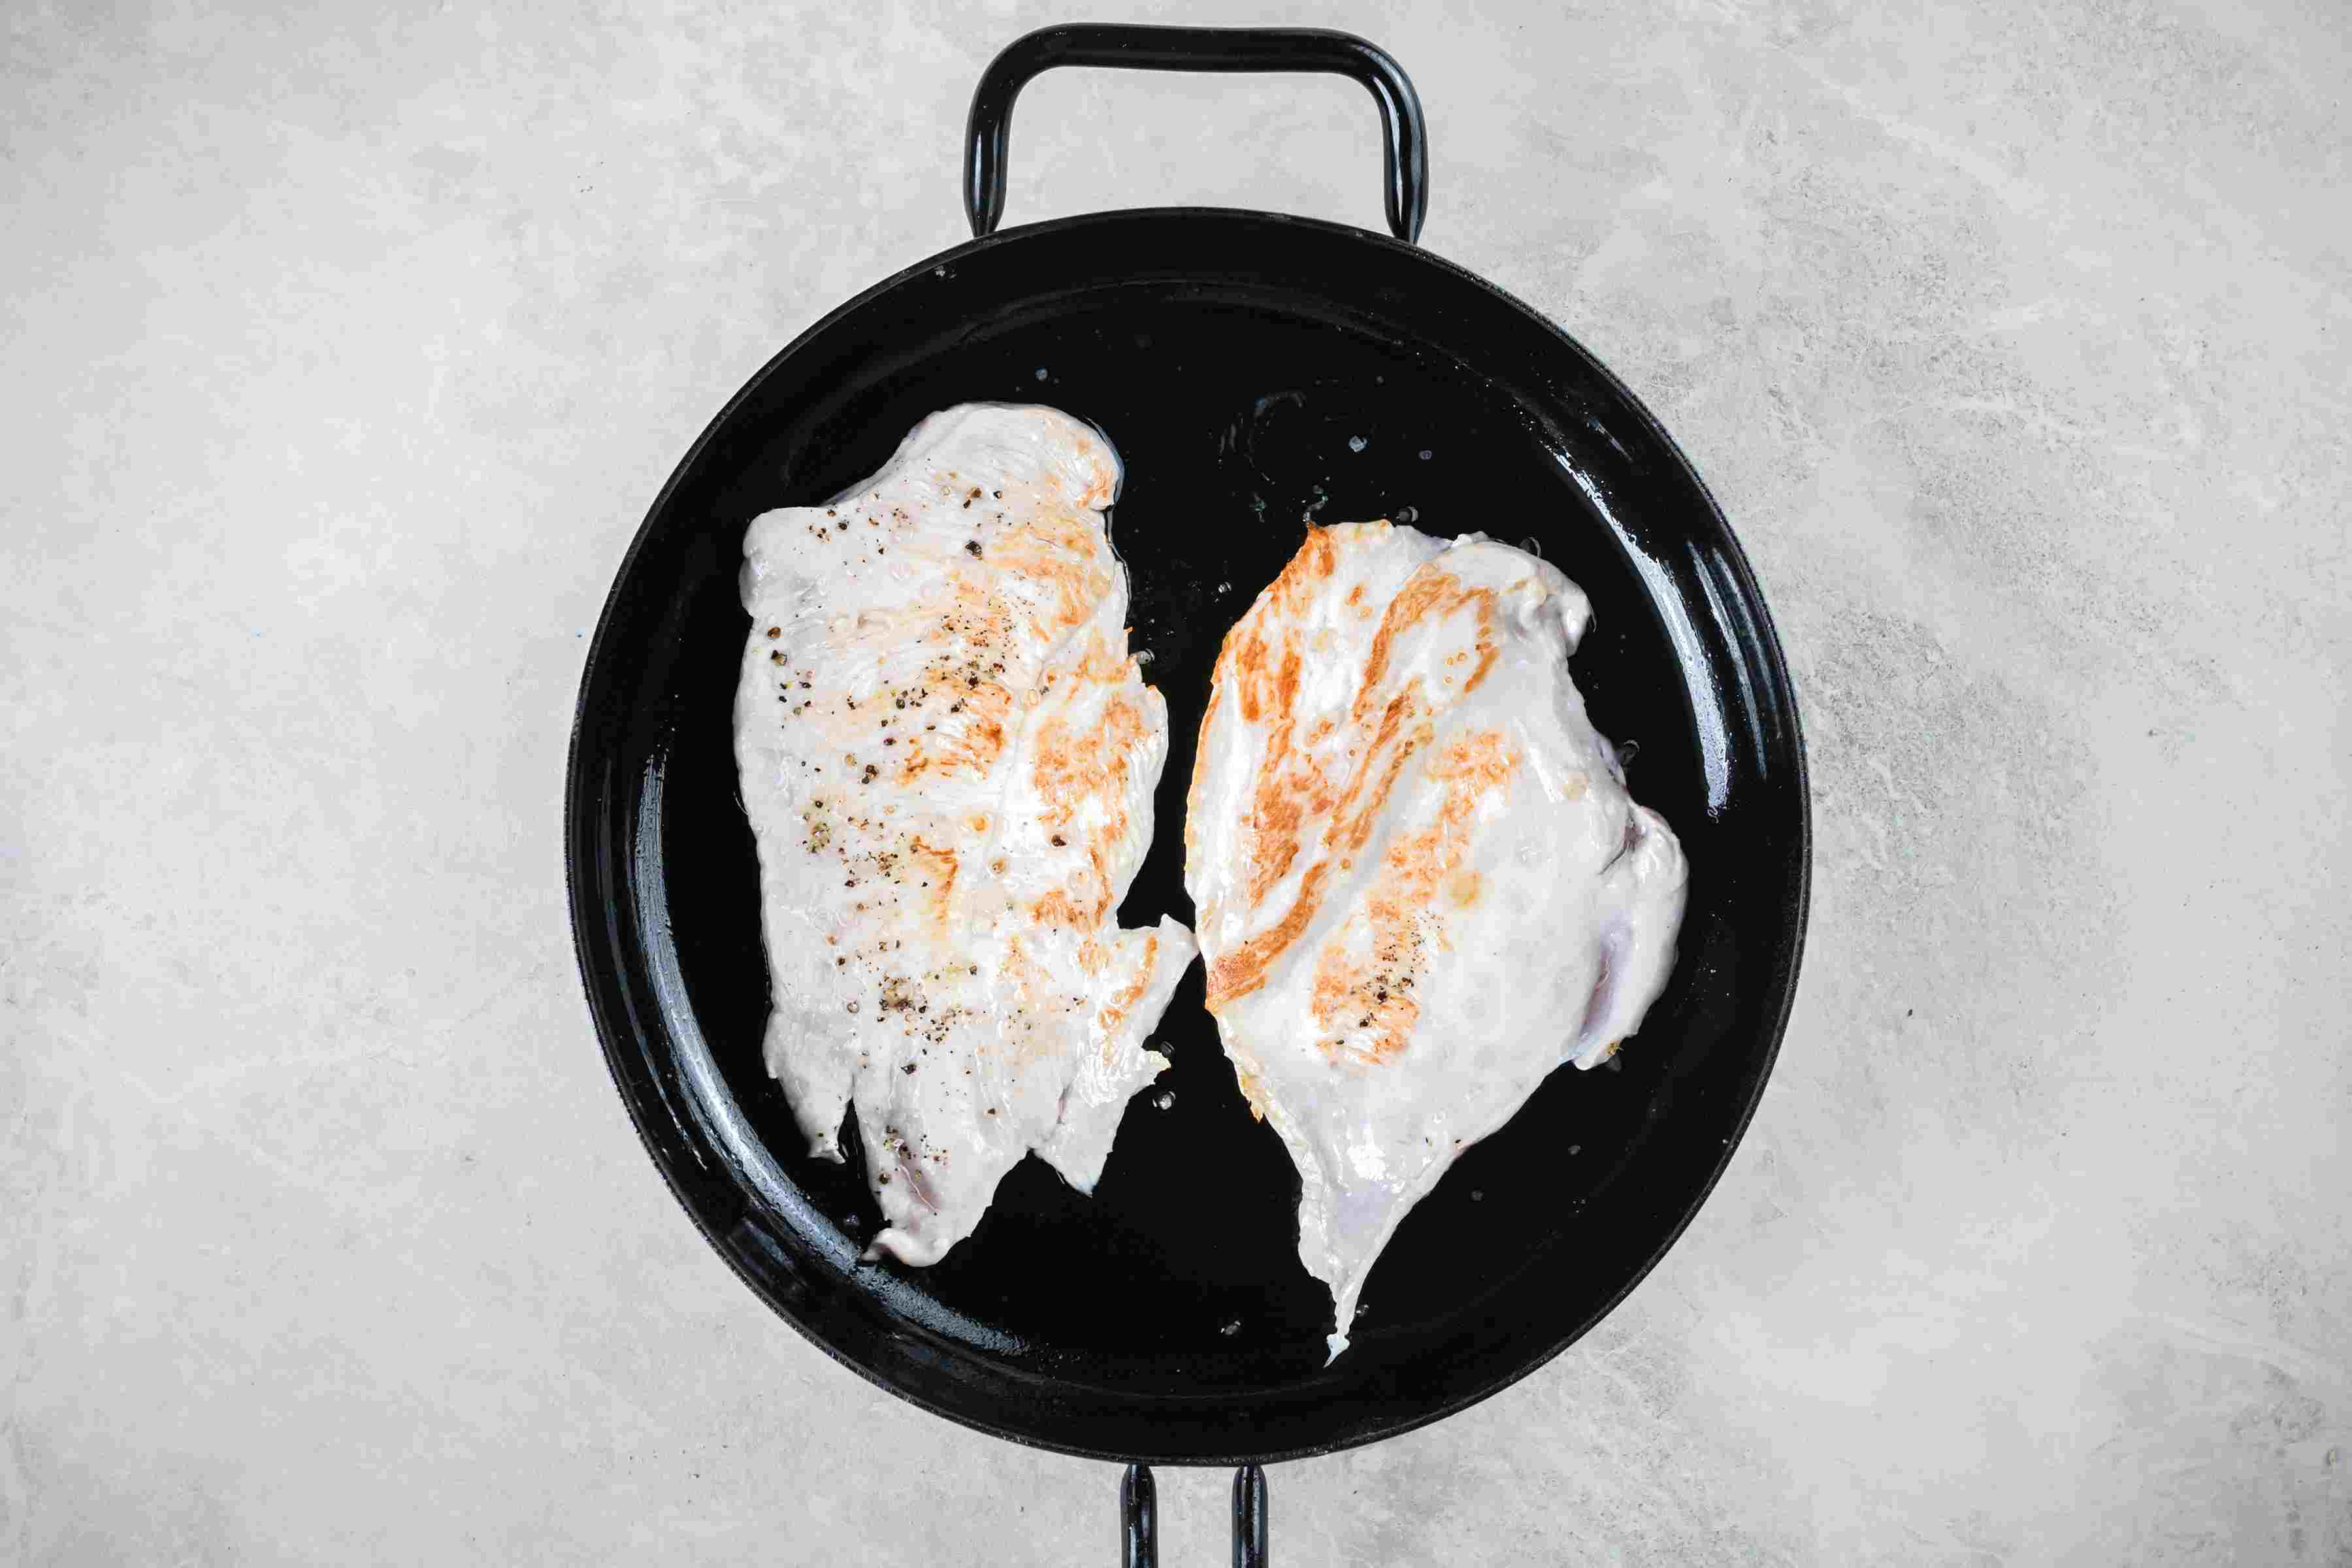 Browned turkey breasts in cast-iron skillet